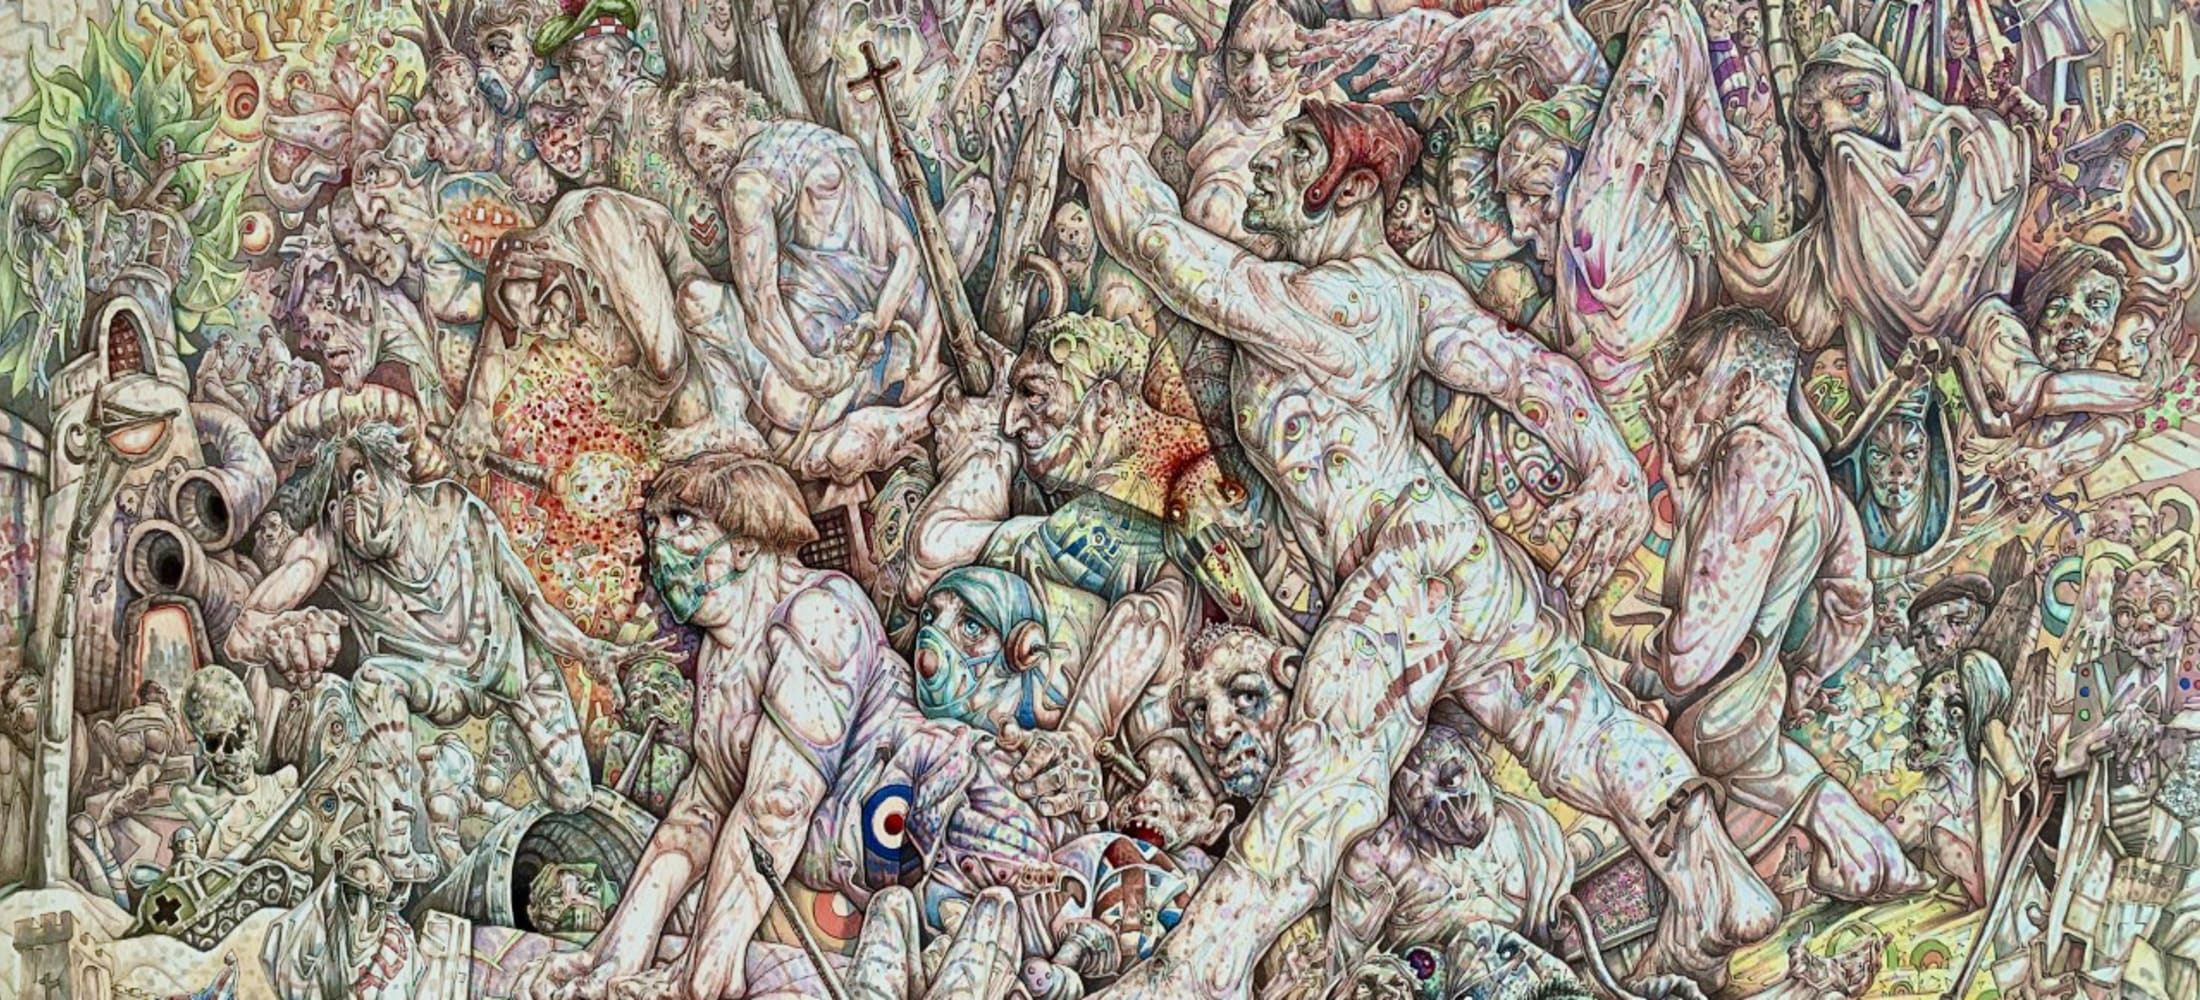 Peter Howson: When the World Changed The Lockdown Drawings